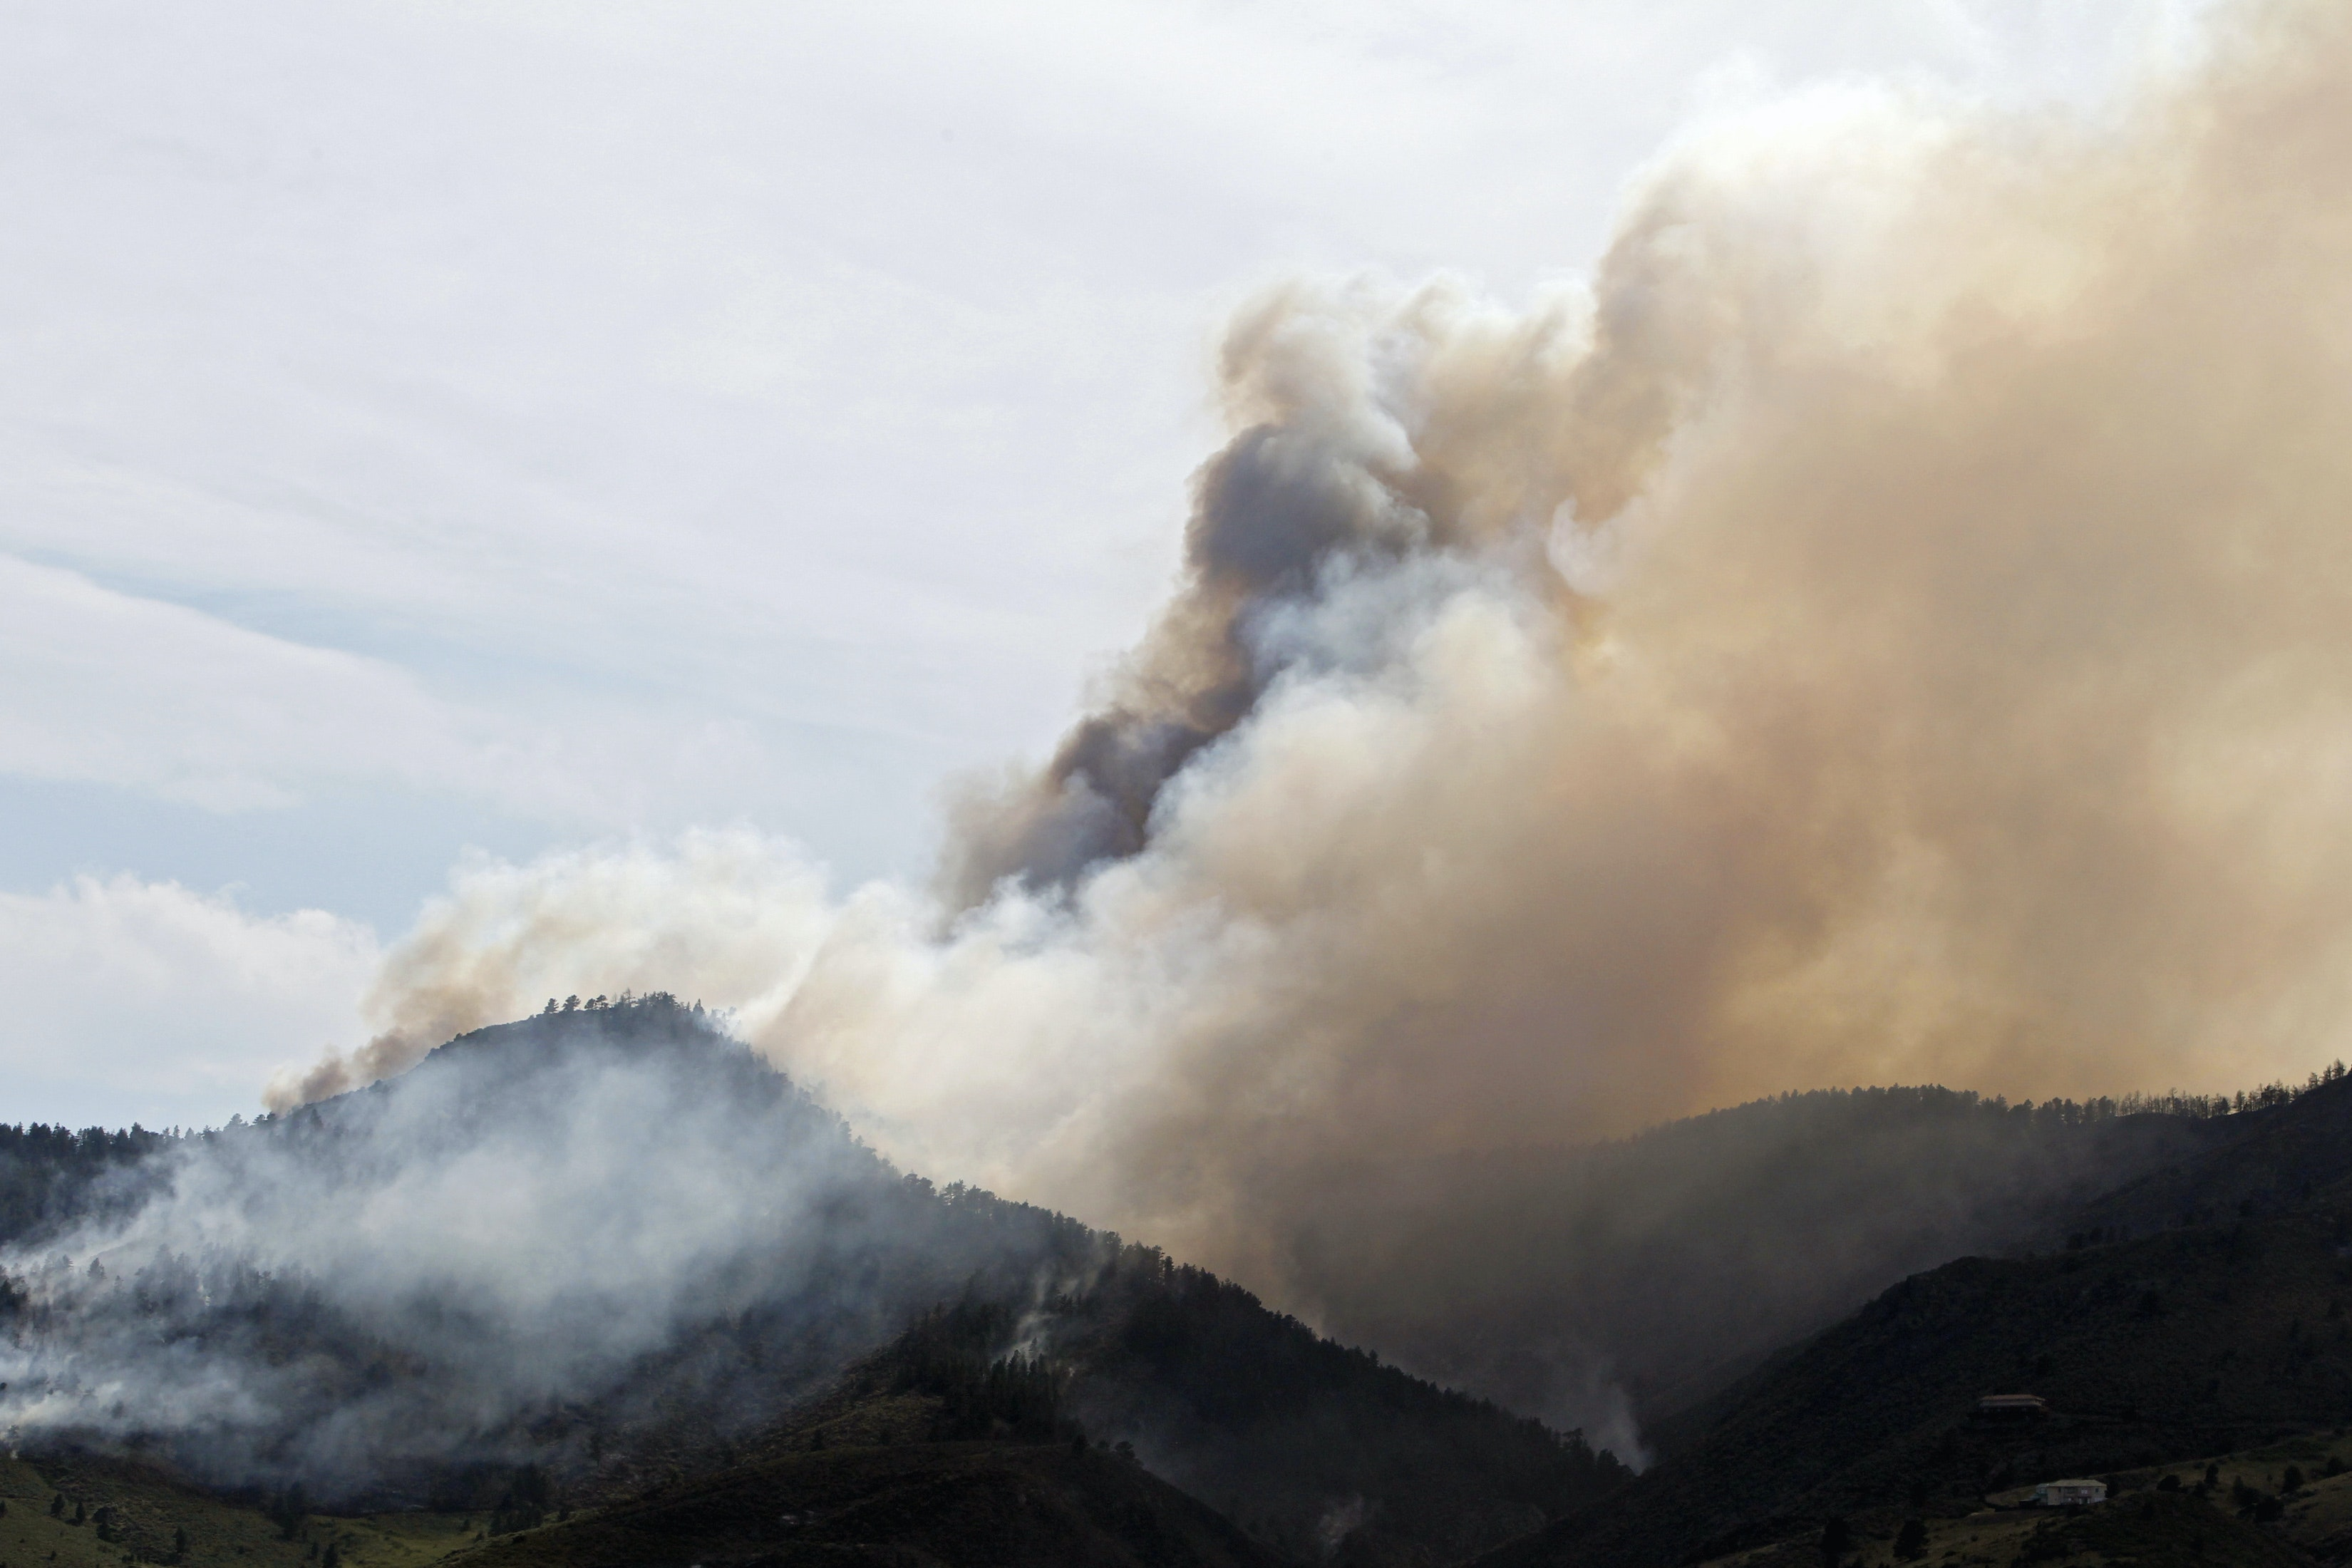 Climate Change Is Driving Wildfires, and Not Just in California